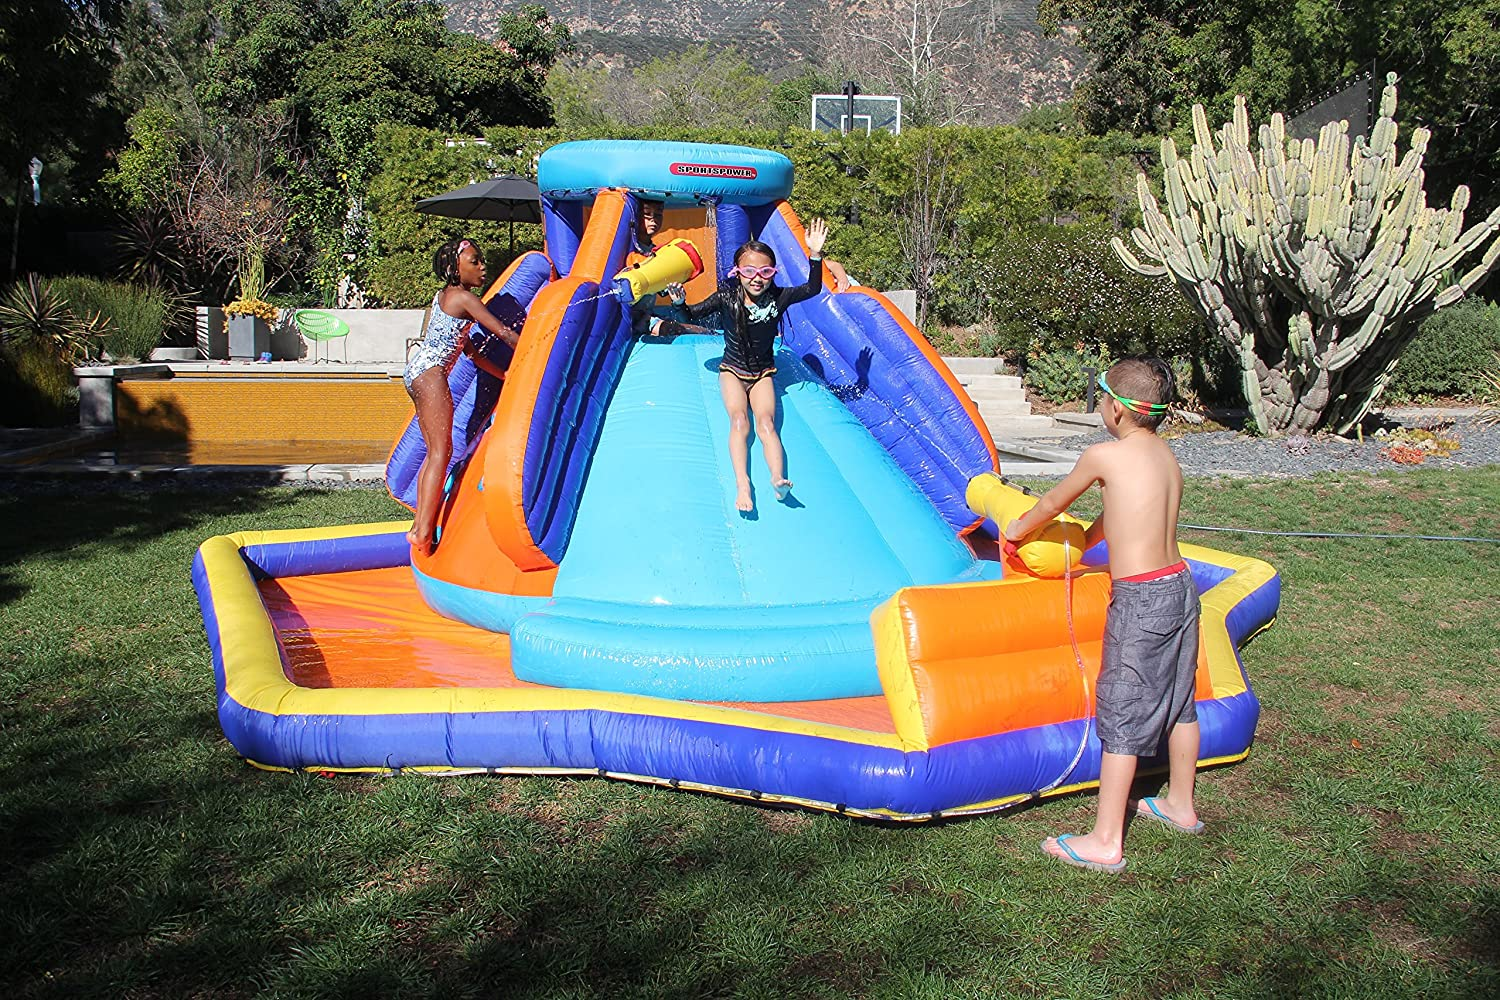 Top 7 Best Water Slide Pools Inflatable (2019 Reviews) 5